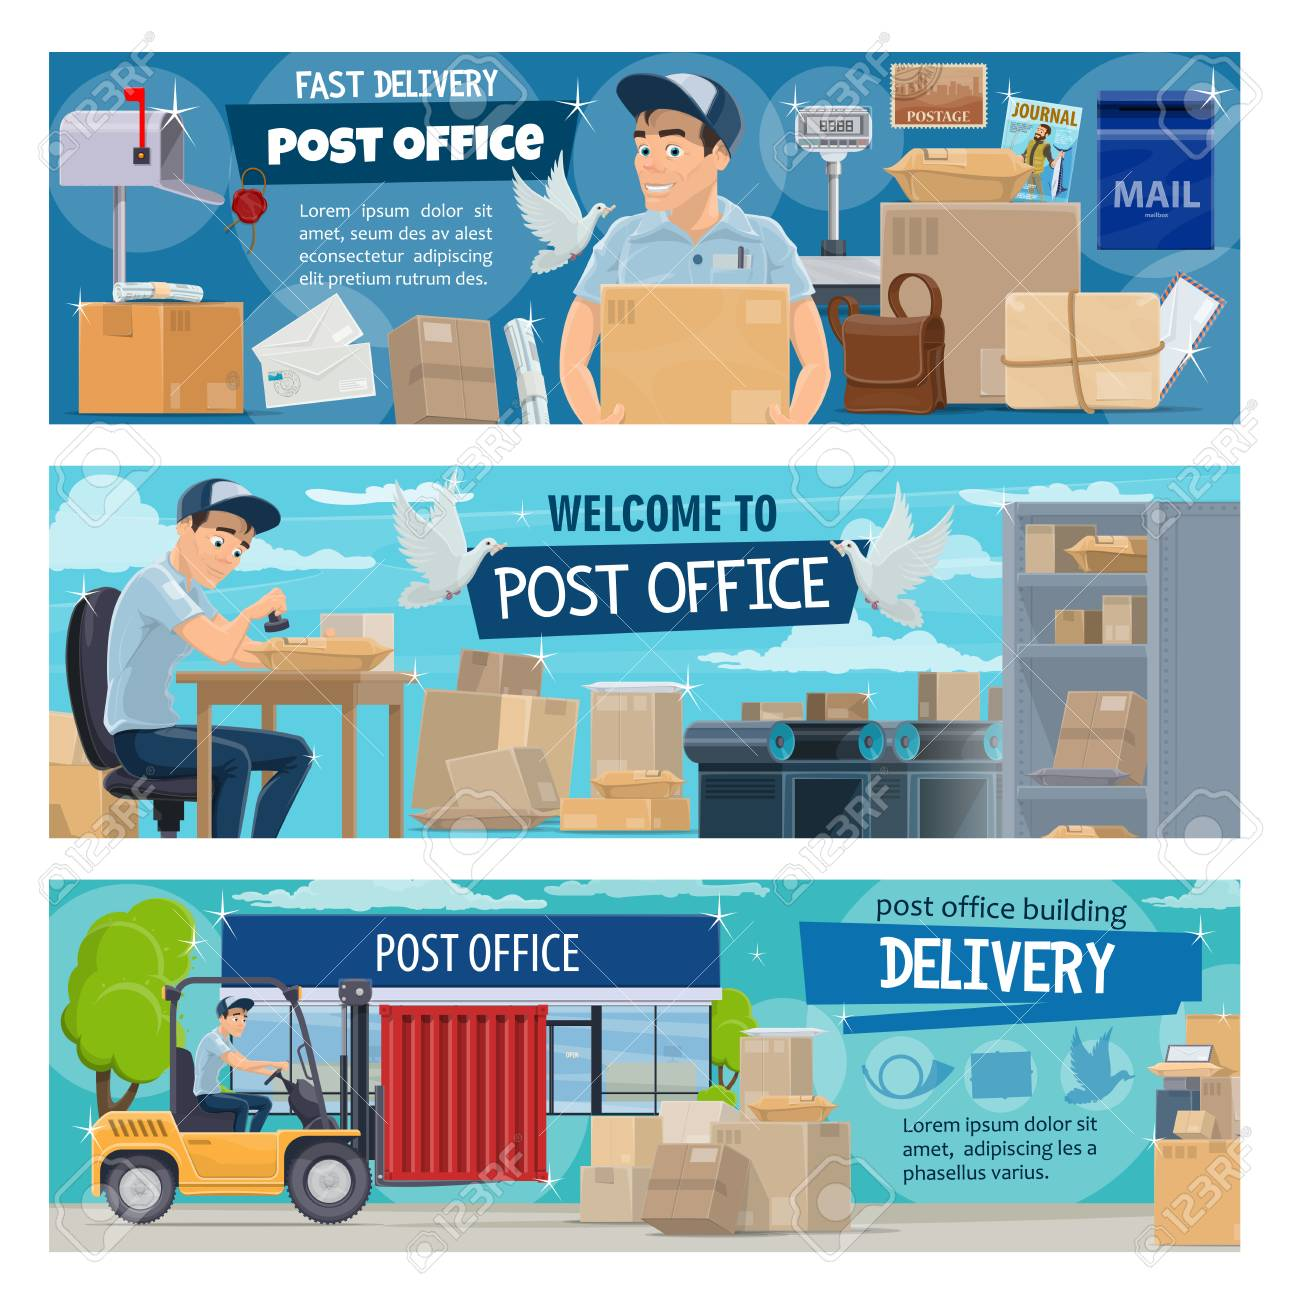 Post Office Postal Delivery Service Vector Postman Cartoon